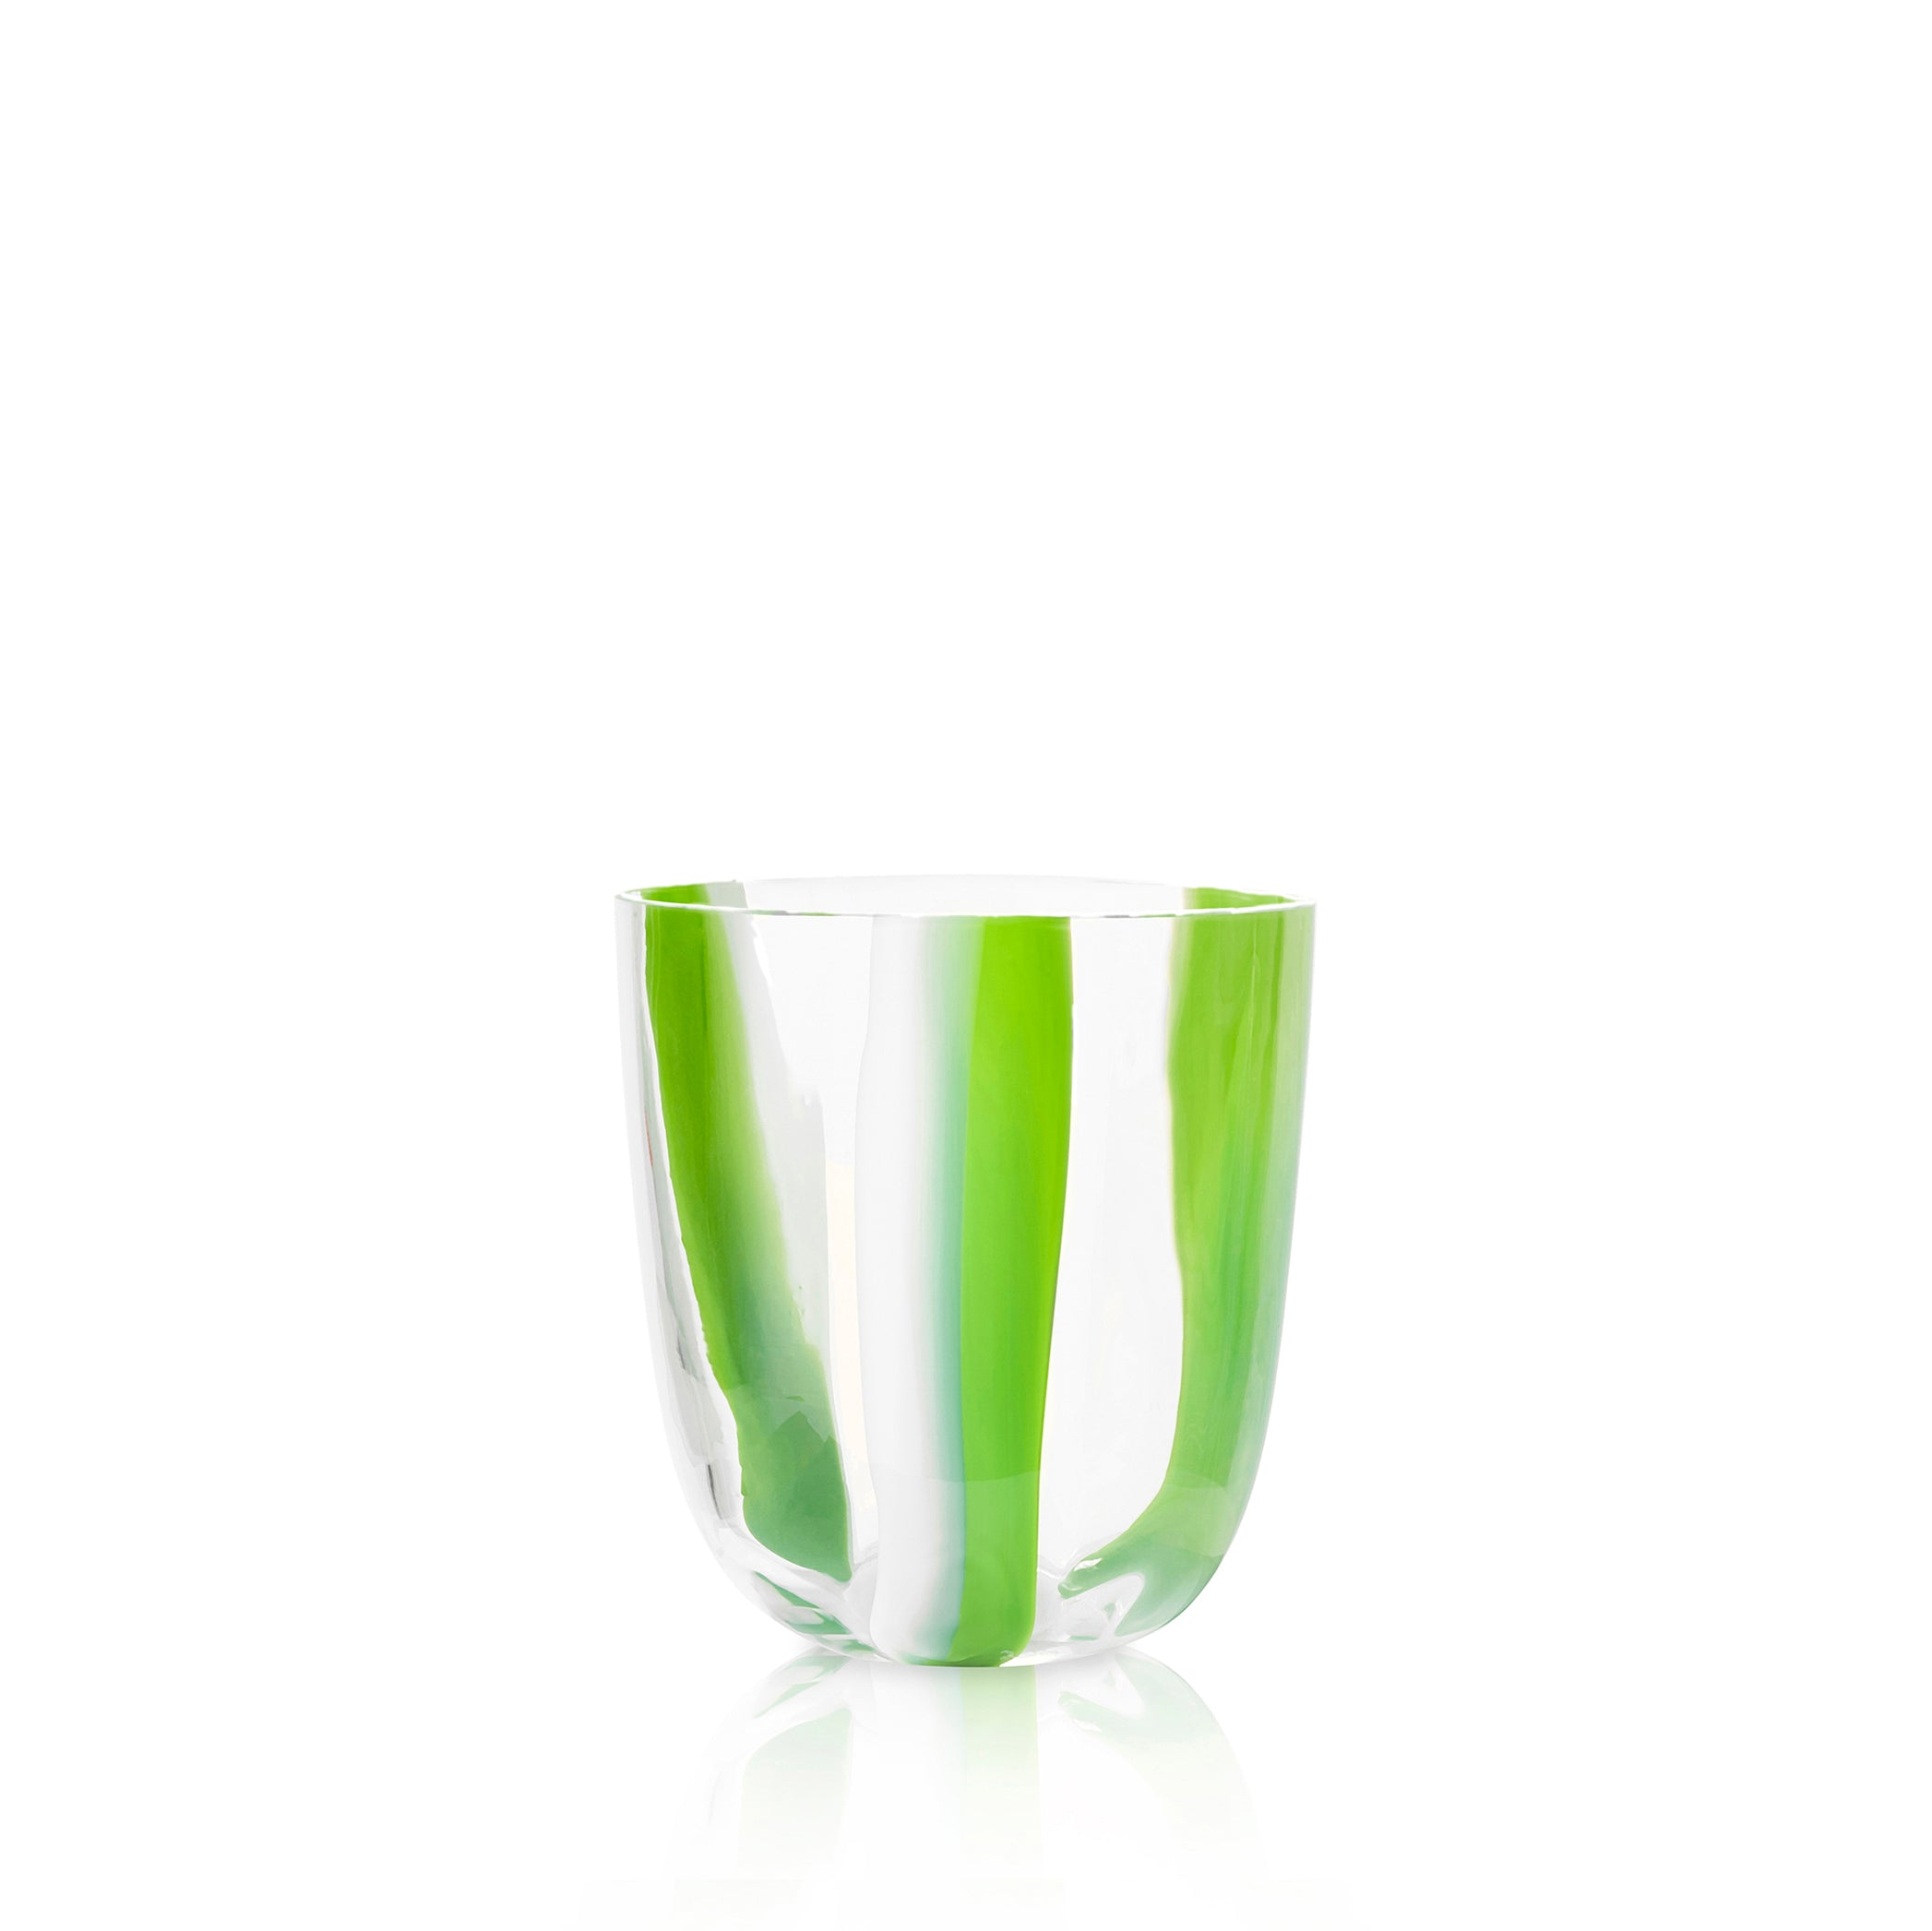 Set of Eight Handblown Stripe Glass Tumblers in Avocado Green & White